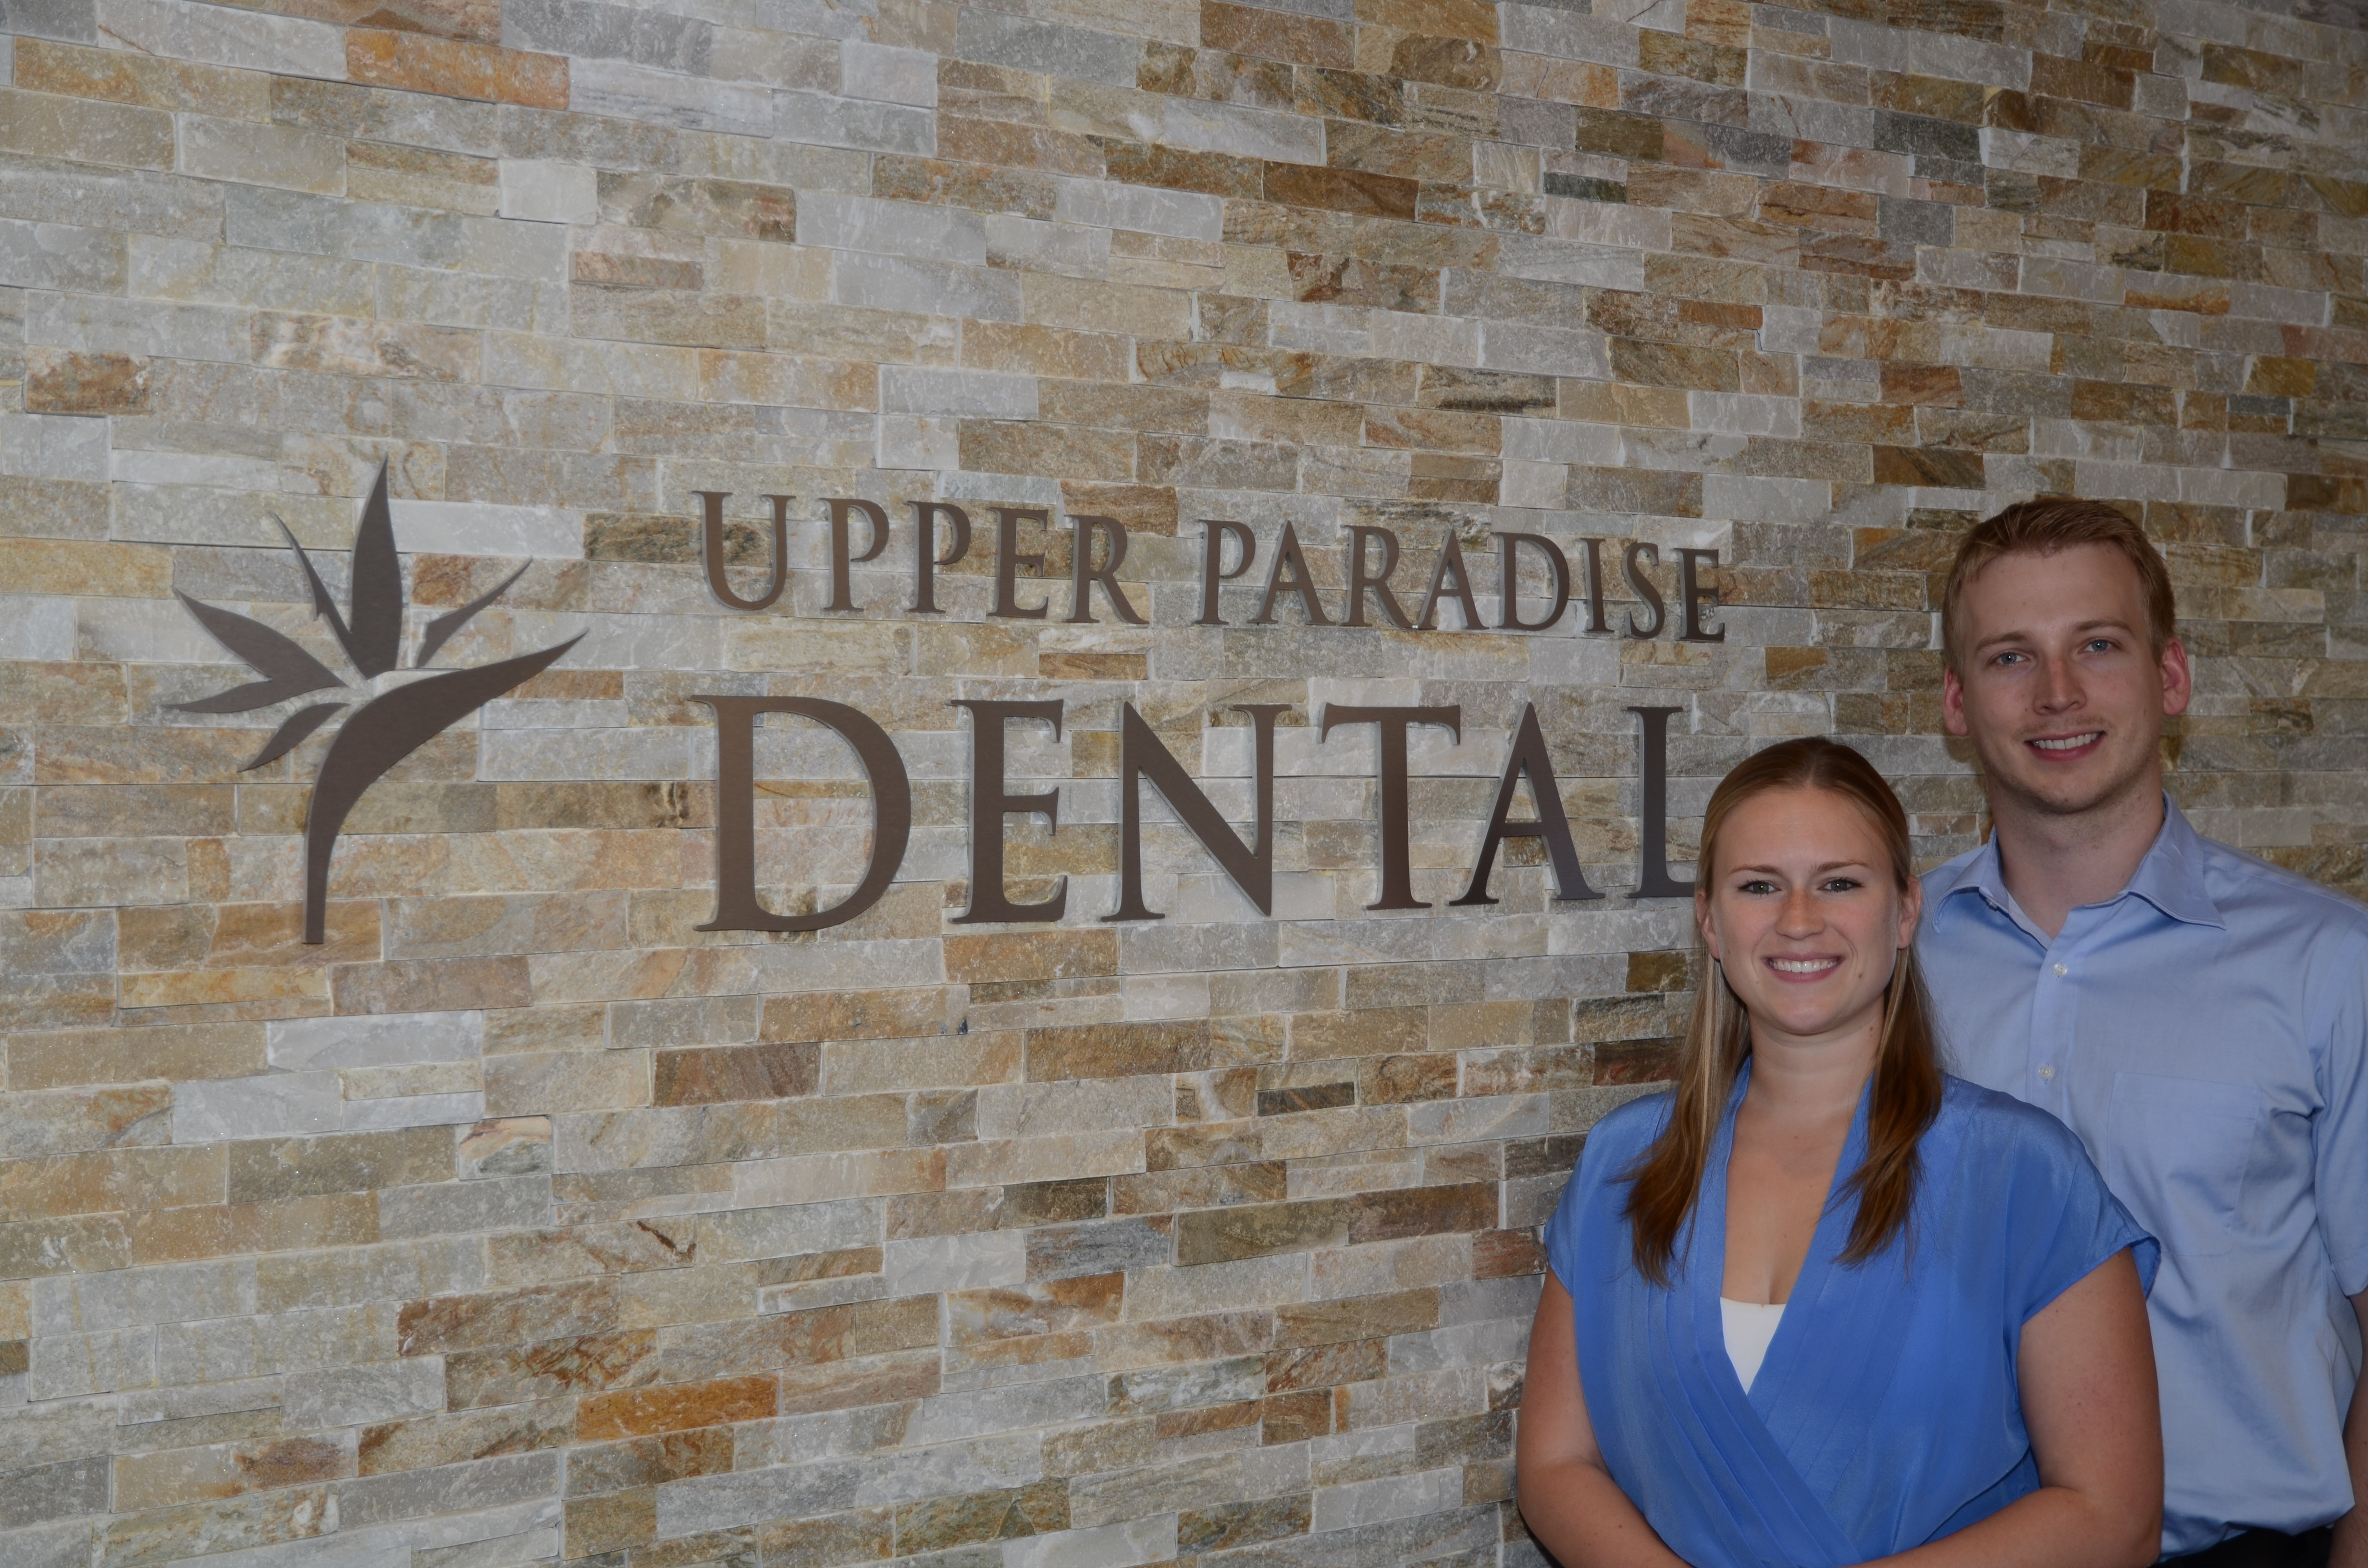 Dr Puksa and office manager Jen would like to welcome you to Upper Paradise Dental.